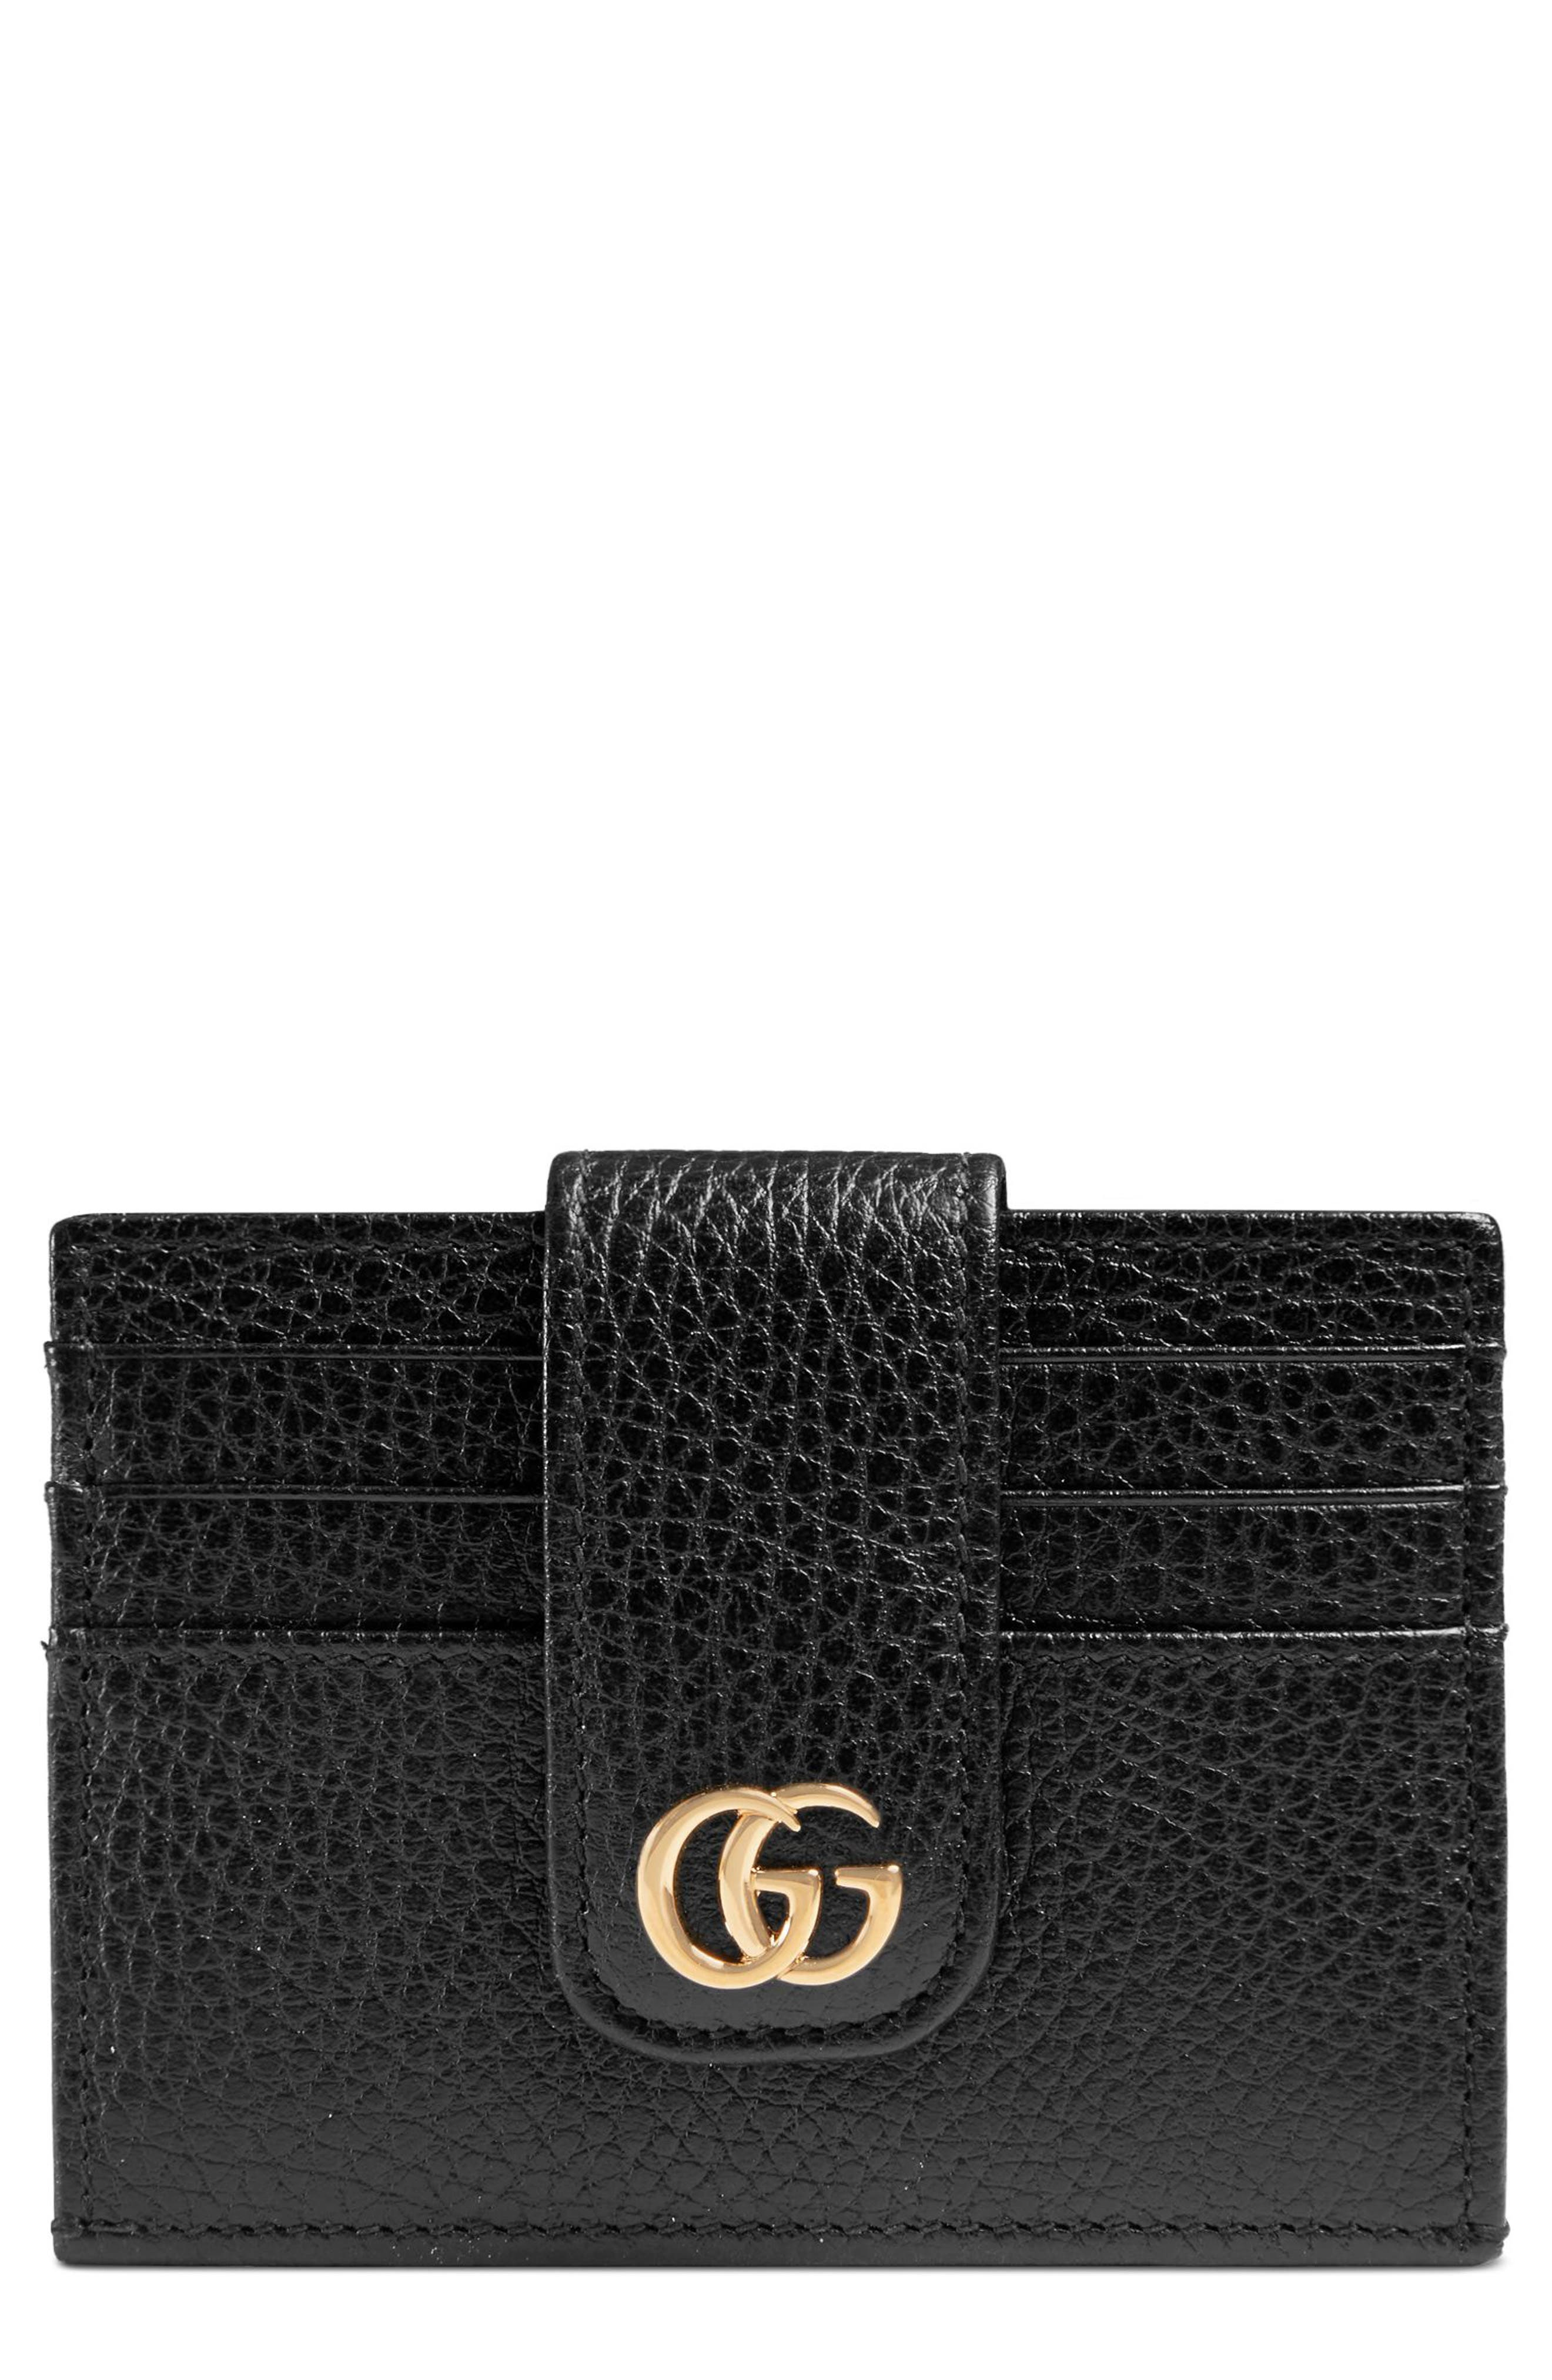 GG Marmont Leather Card Case,                         Main,                         color, NERO